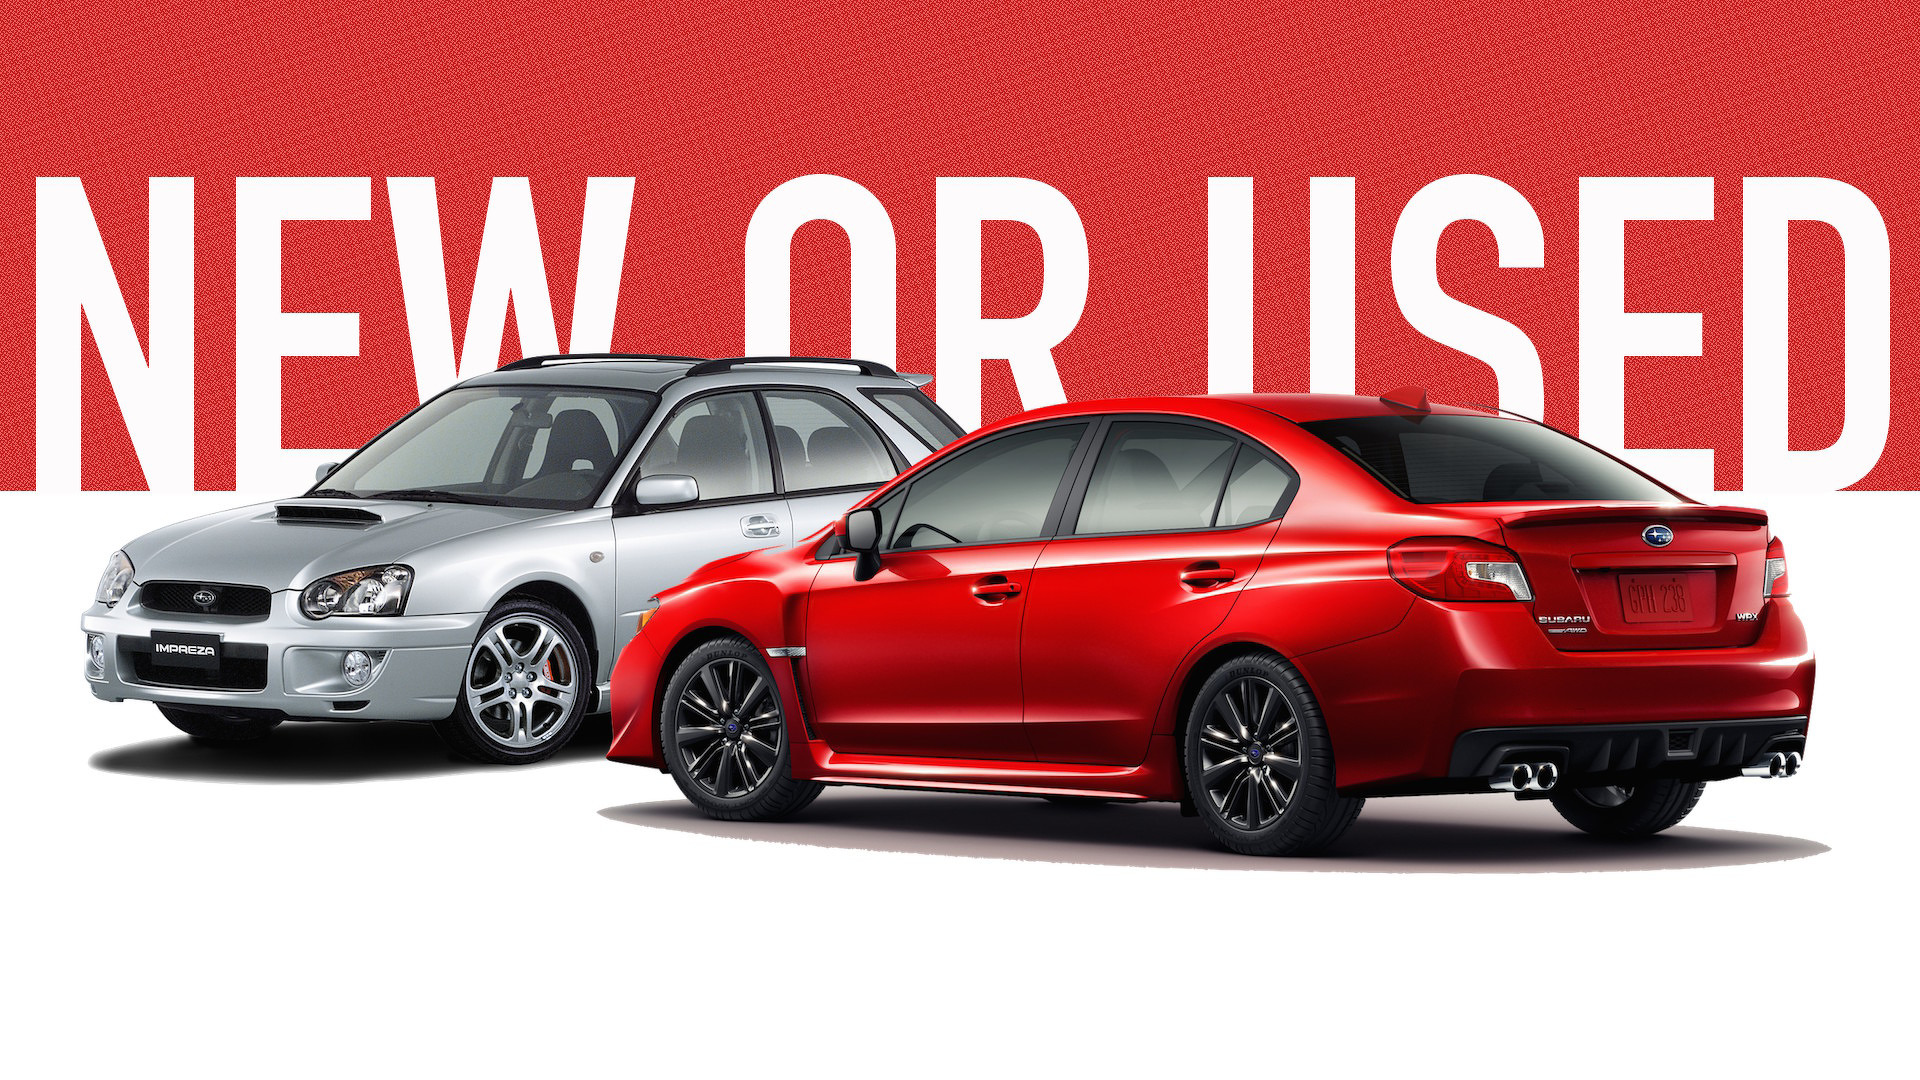 New or Used Car Fresh Should You A New Car or A Used One